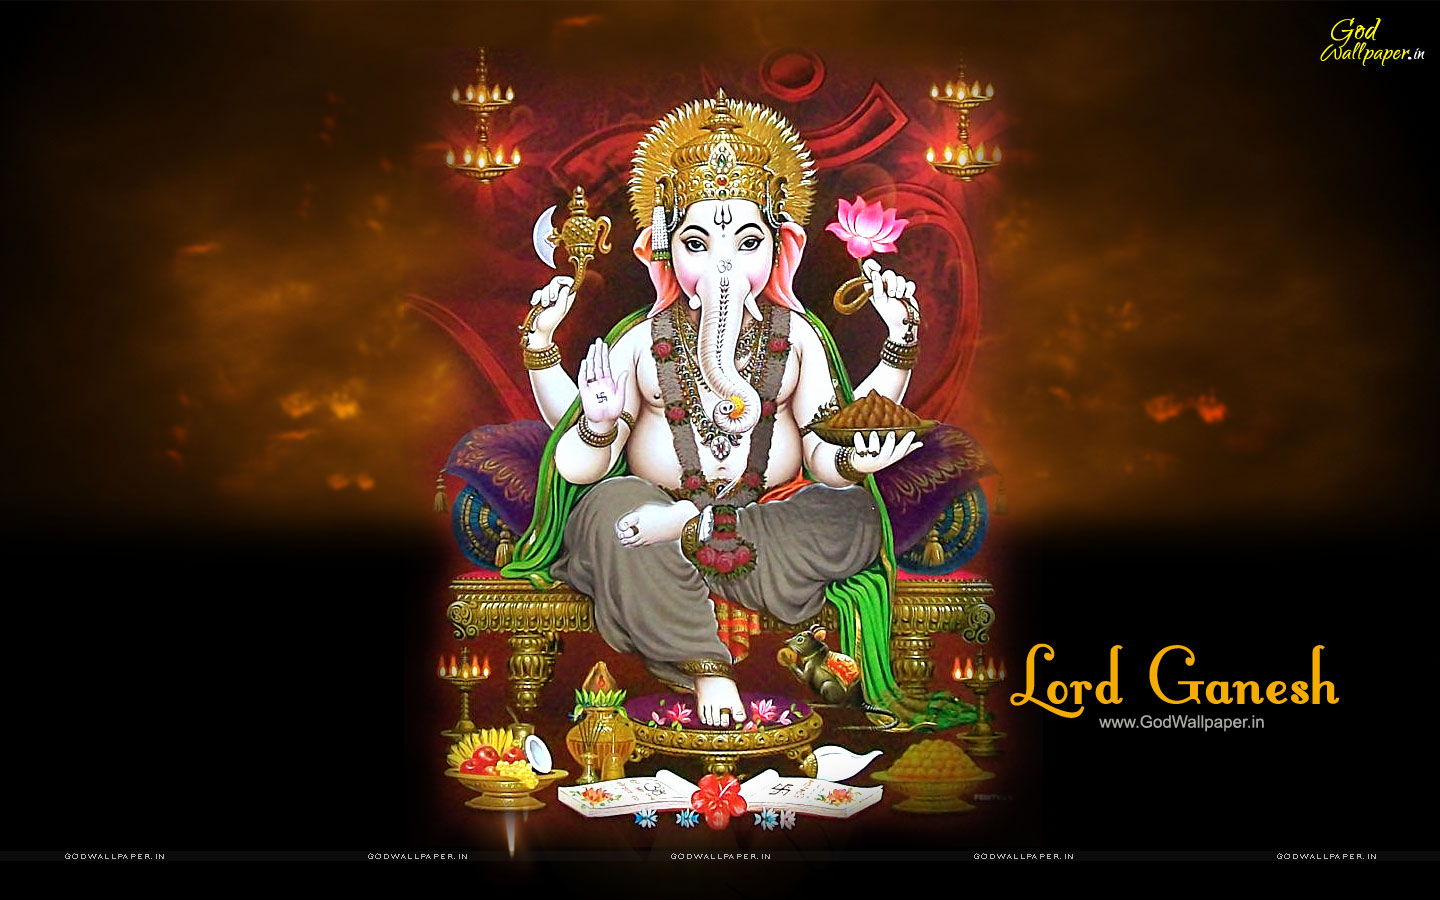 Ganesh Live Wallpaper Download for PC 1440x900